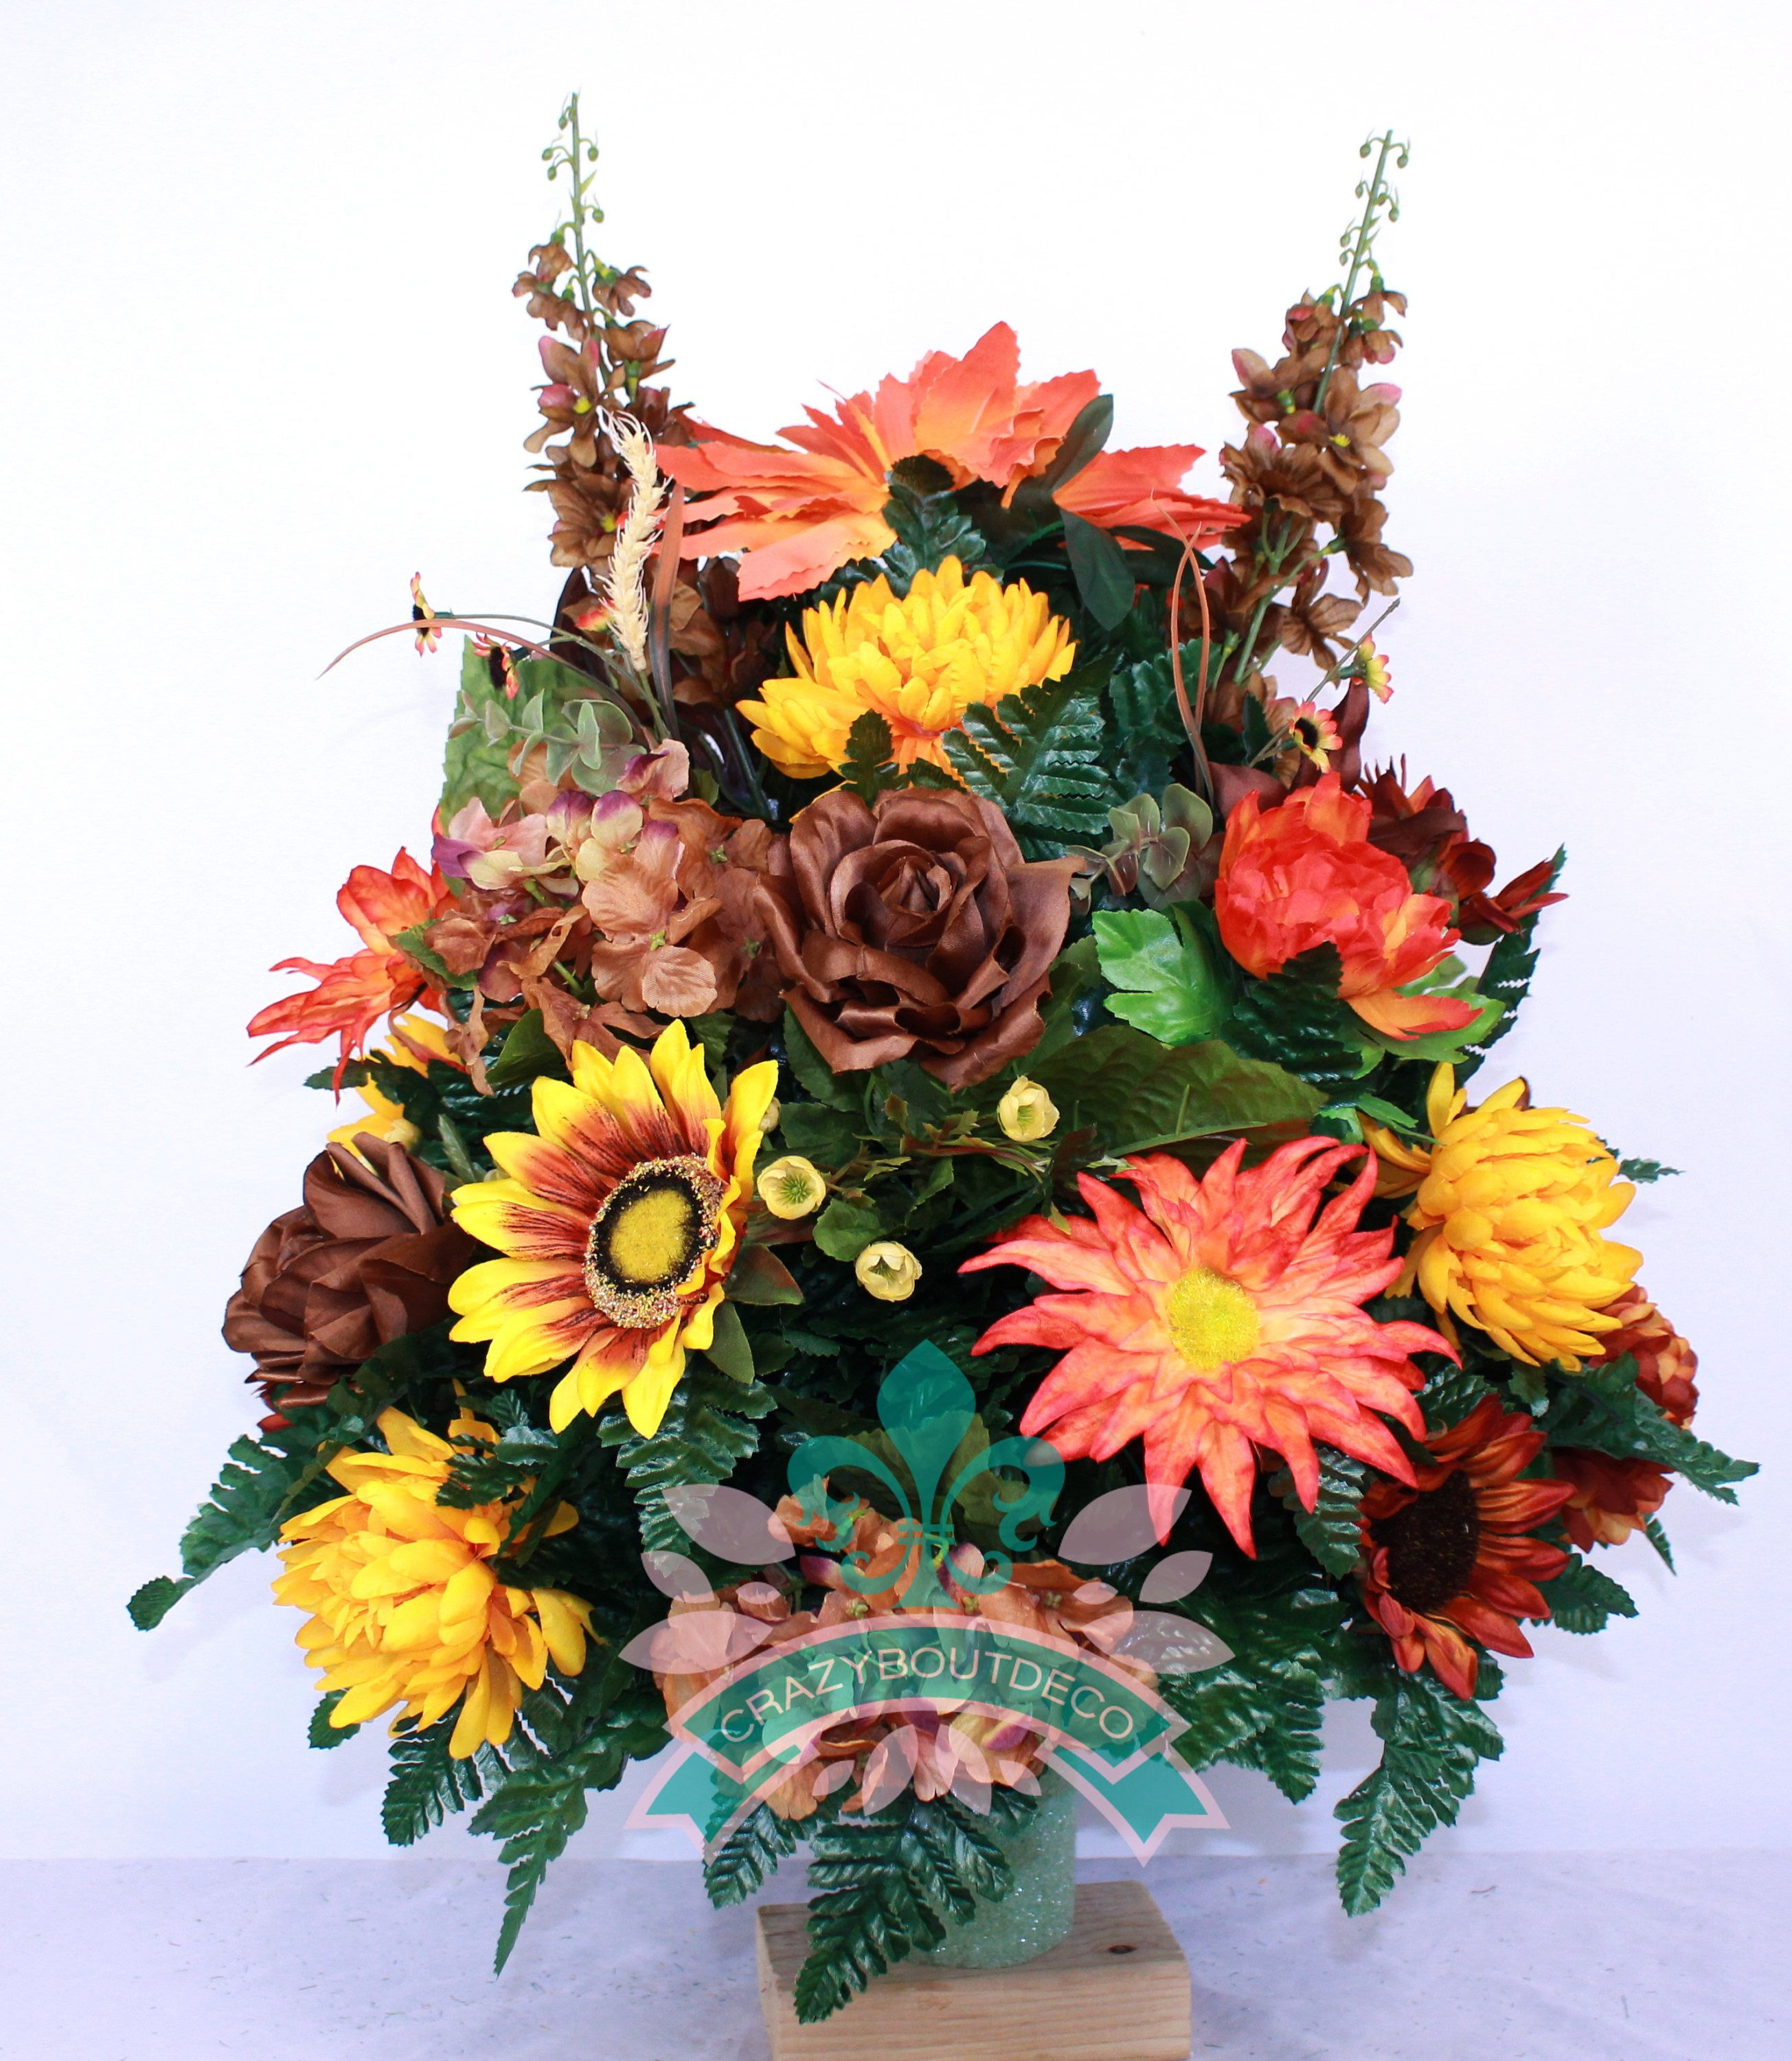 Stay In the Vase Cemetery Flowers Of Beautiful Xl Fall Flower Mixture Cemetery Arrangement for 3 Inch Pertaining to Beautiful Xl Fall Flower Mixture Cemetery Arrangement for 3 Inch Vase by Crazyboutdeco On Etsy